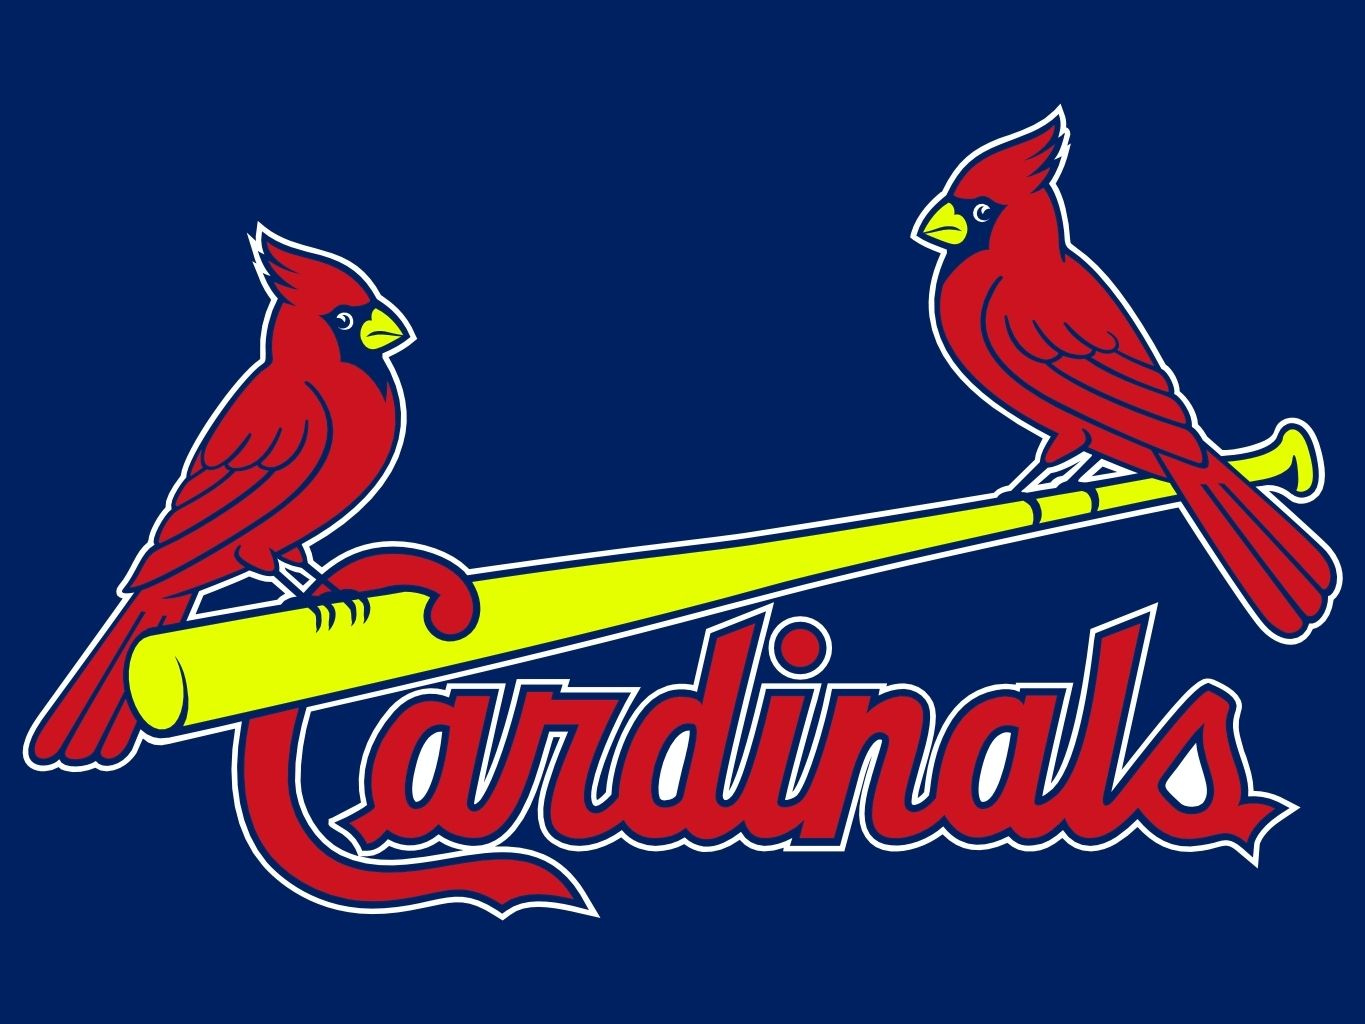 24 best st louis cardinals images on pinterest cardinals baseball rh pinterest com